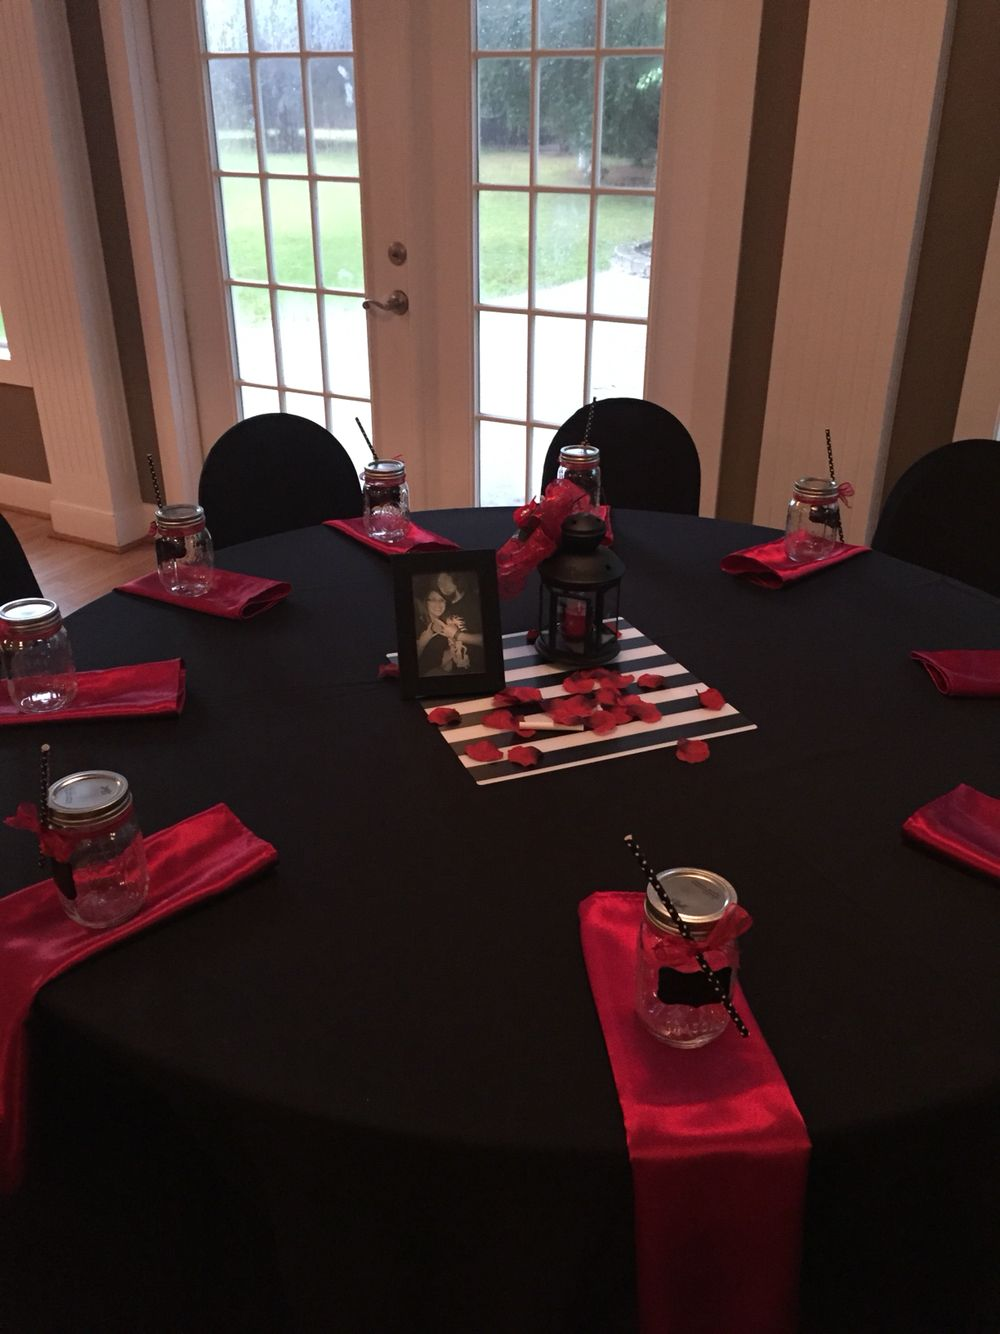 Black and red with mason jar favors